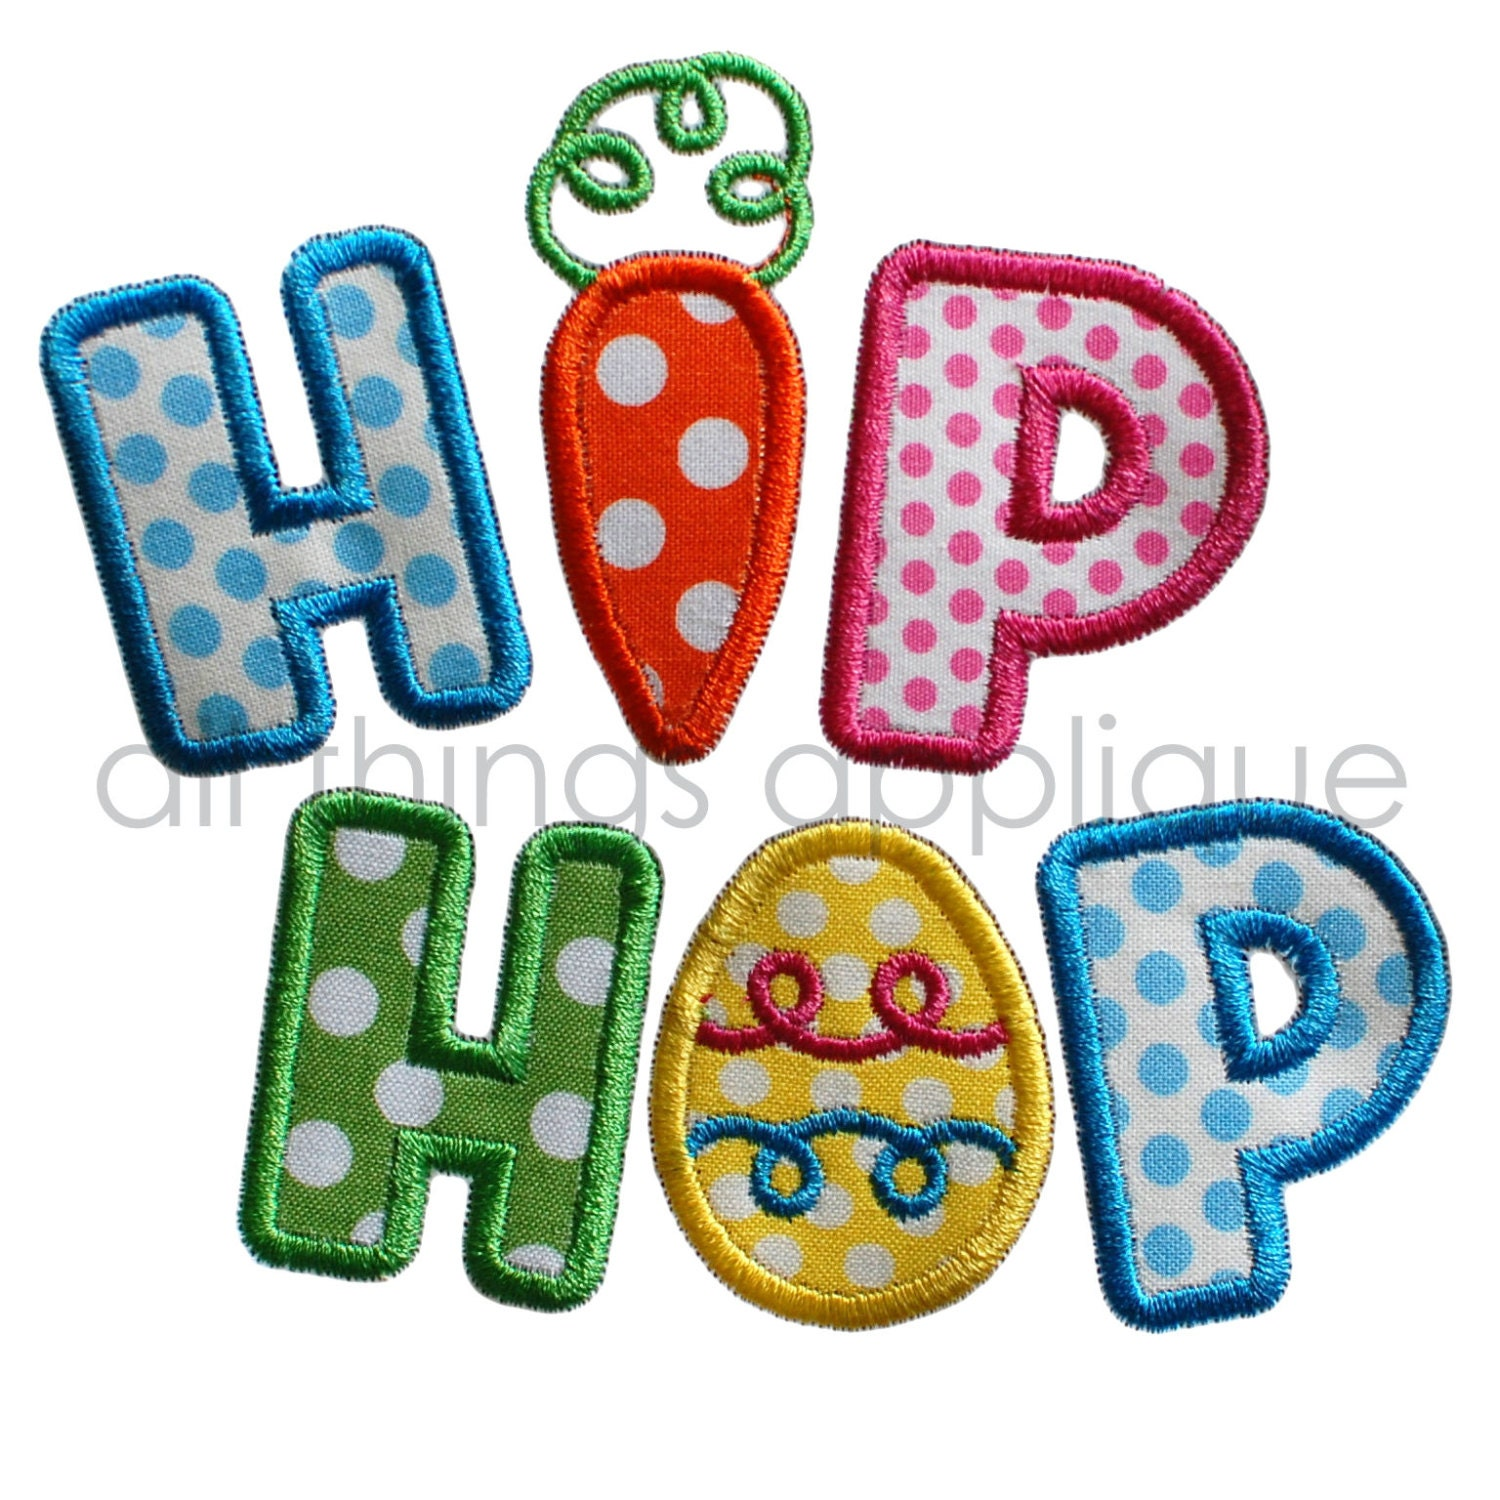 Easter applique design hip hop